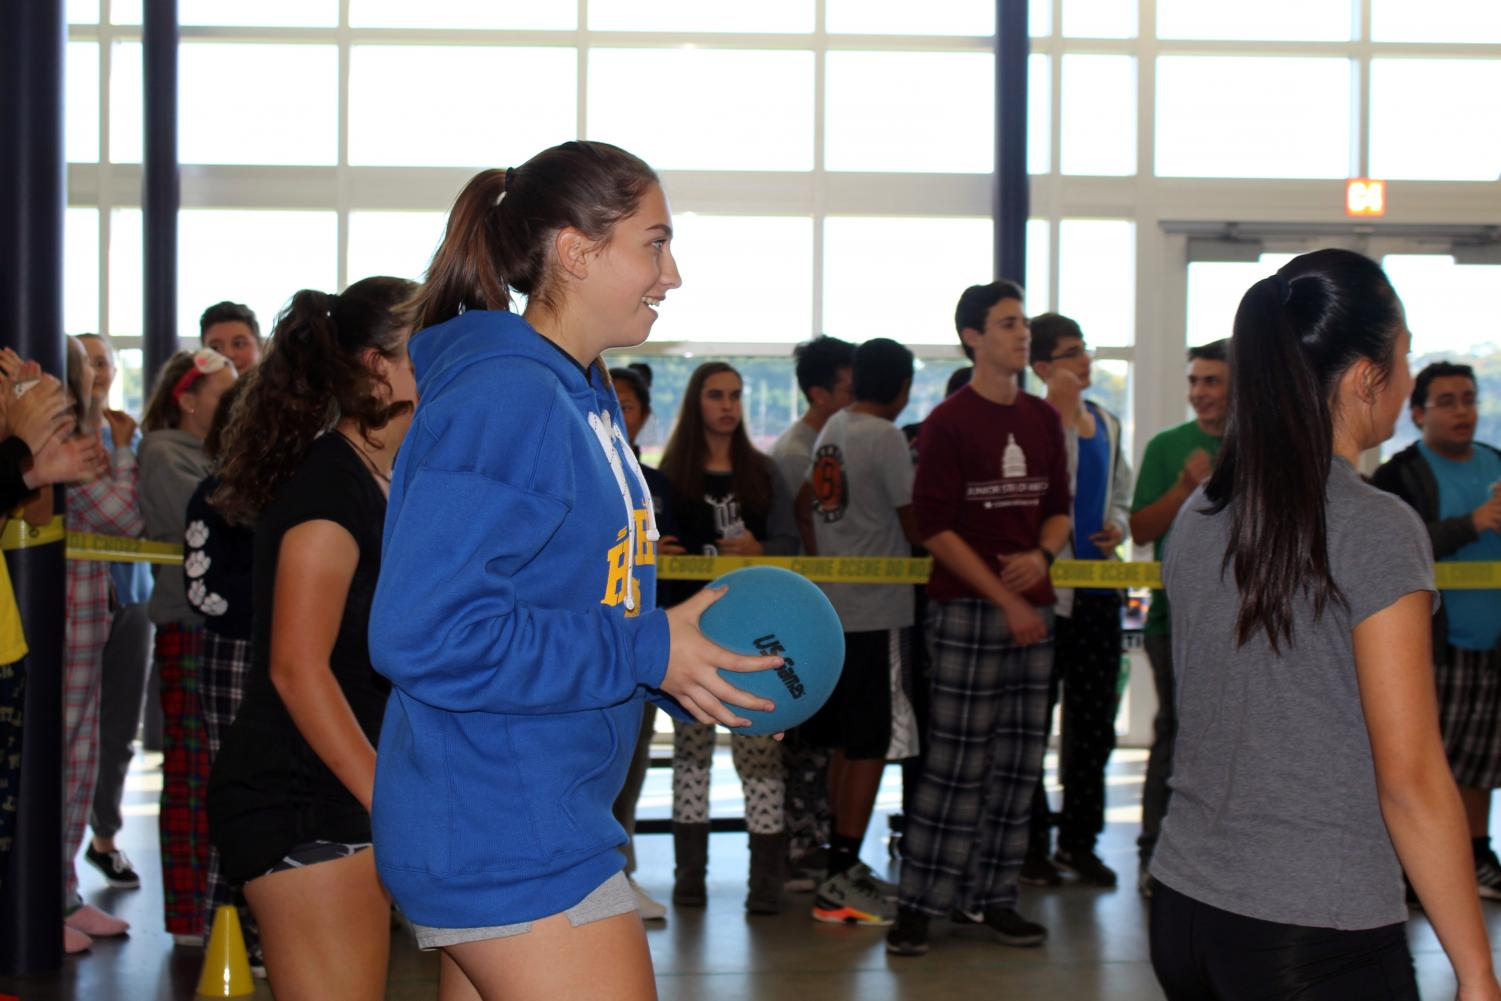 Junior+Kate+Dickenson+of+Spring+Lake+Heights+was+one+of+three+girls+on+her+dodgeball+team.+Dickenson+was+the+first+to+be+eliminated+during+the+game+for+third+place+against+the+seniors.+The+juniors+placed+last+in+the+event%2C+followed+by+the+seniors+in+third%2C+the+sophomores+in+second+and+the+freshmen+in+first.